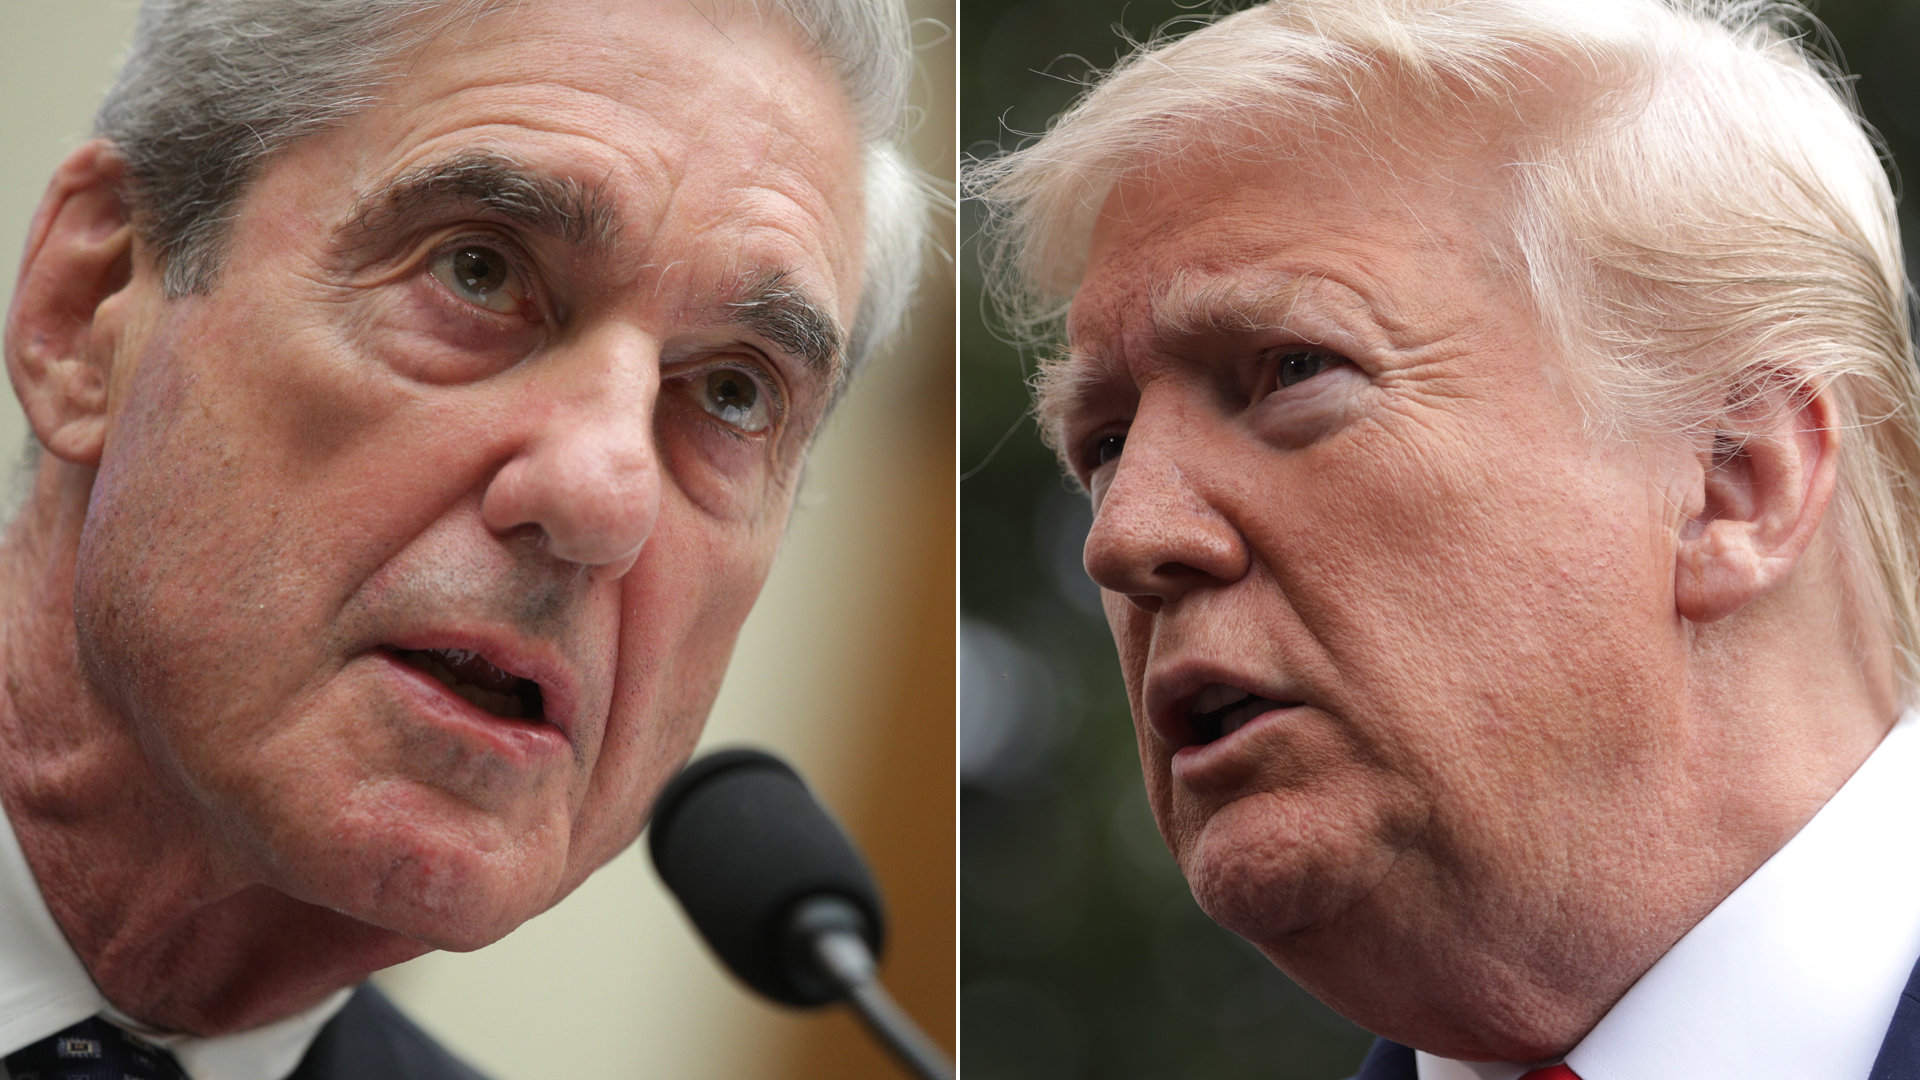 Left, former Special Counsel Robert Mueller testifies before the House Intelligence Committee July 24, 2019. Right, President Donald Trump speaks from the South Lawn of the White House Oct. 25, 2019. (Credit: Alex Wong/Getty Images)